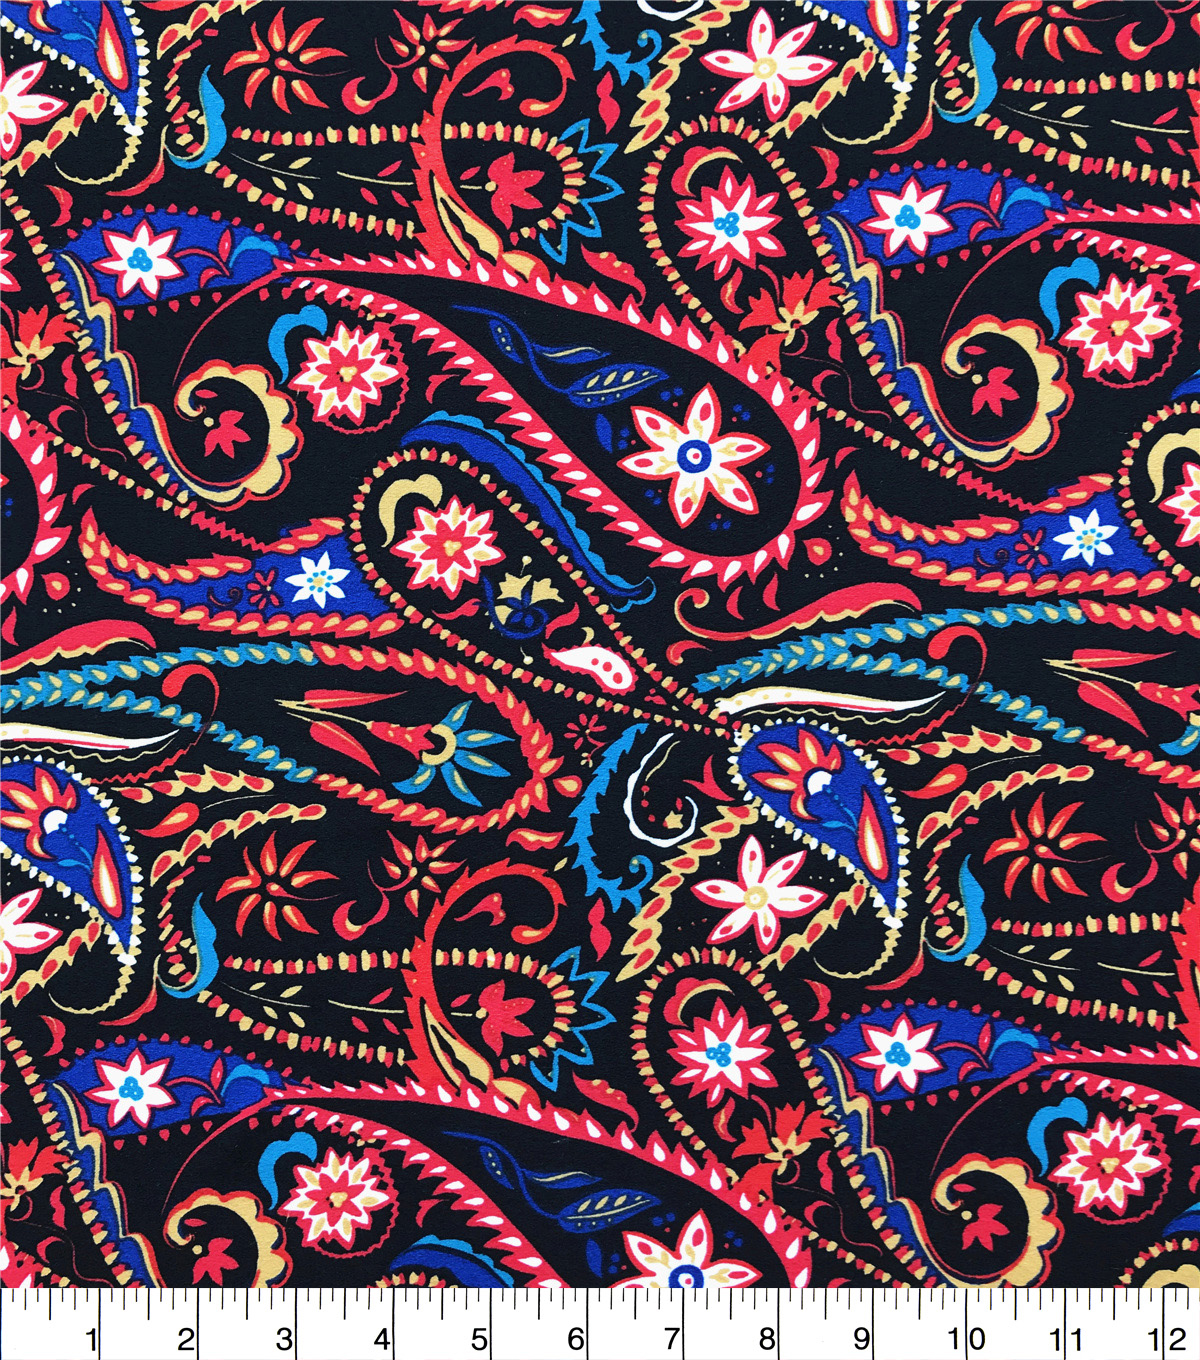 Ember Knit Prints Double Brushed Fabric-Black Warm Floral Paisley